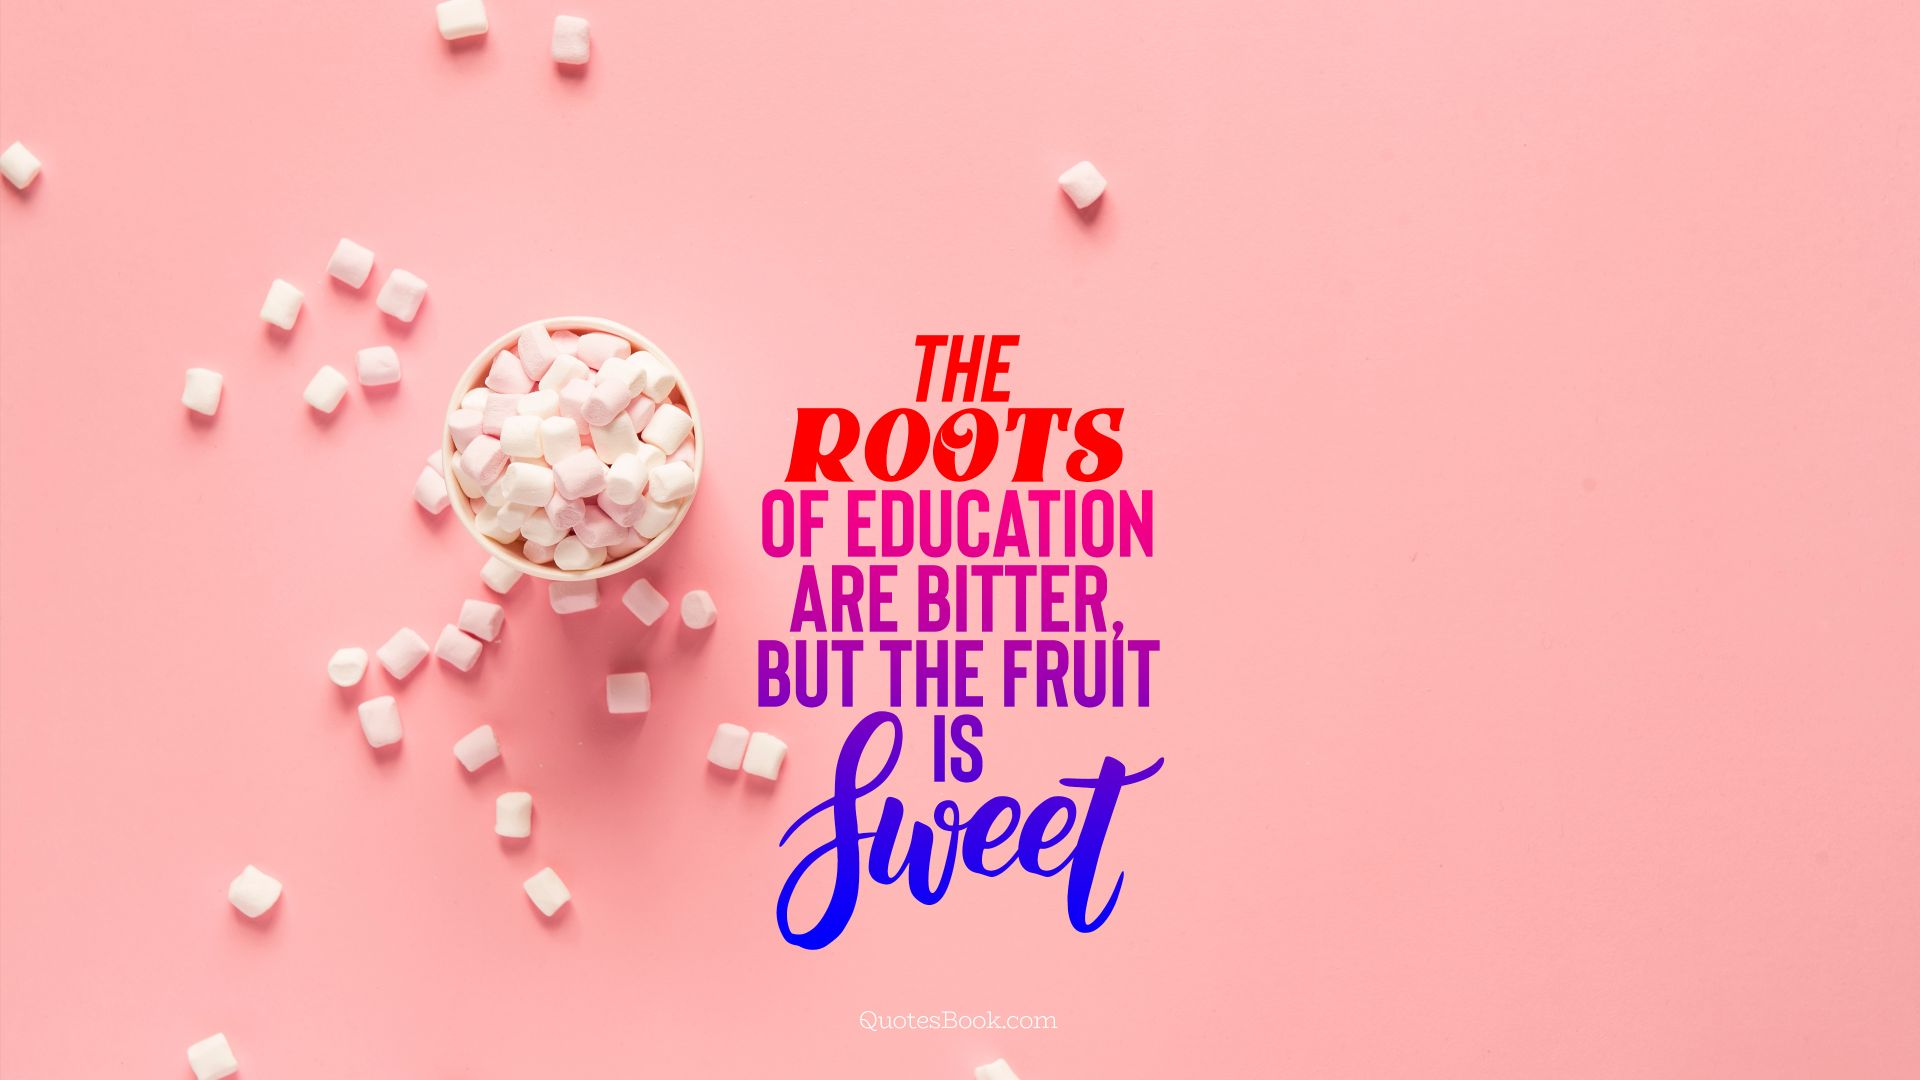 The roots of education are bitter, but the fruit is sweet